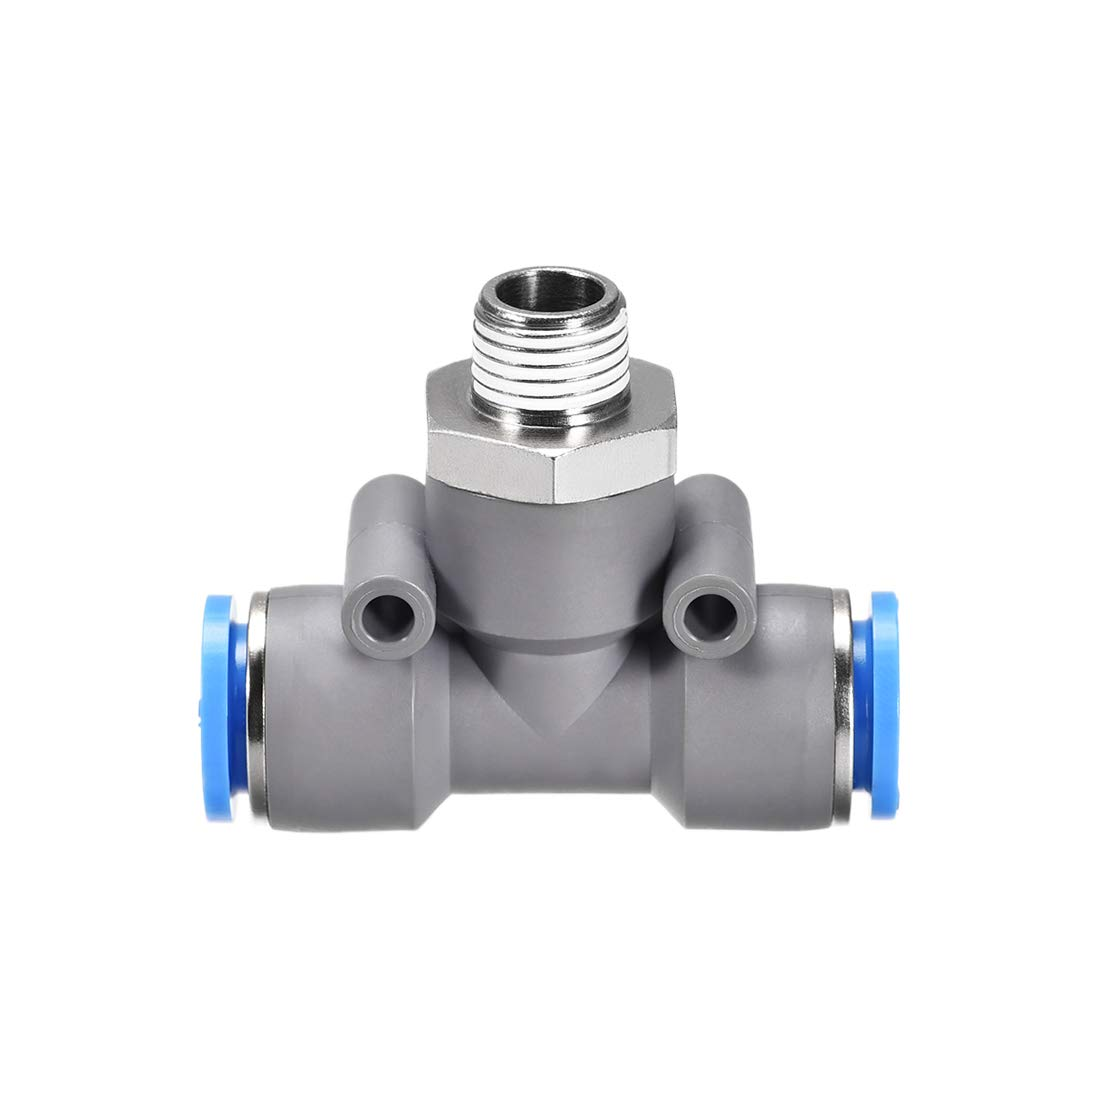 uxcell Push to Connect Air Fittings T Type Thread Tee Tube Connect 12mm OD x PT1//4 Male Thread Grey